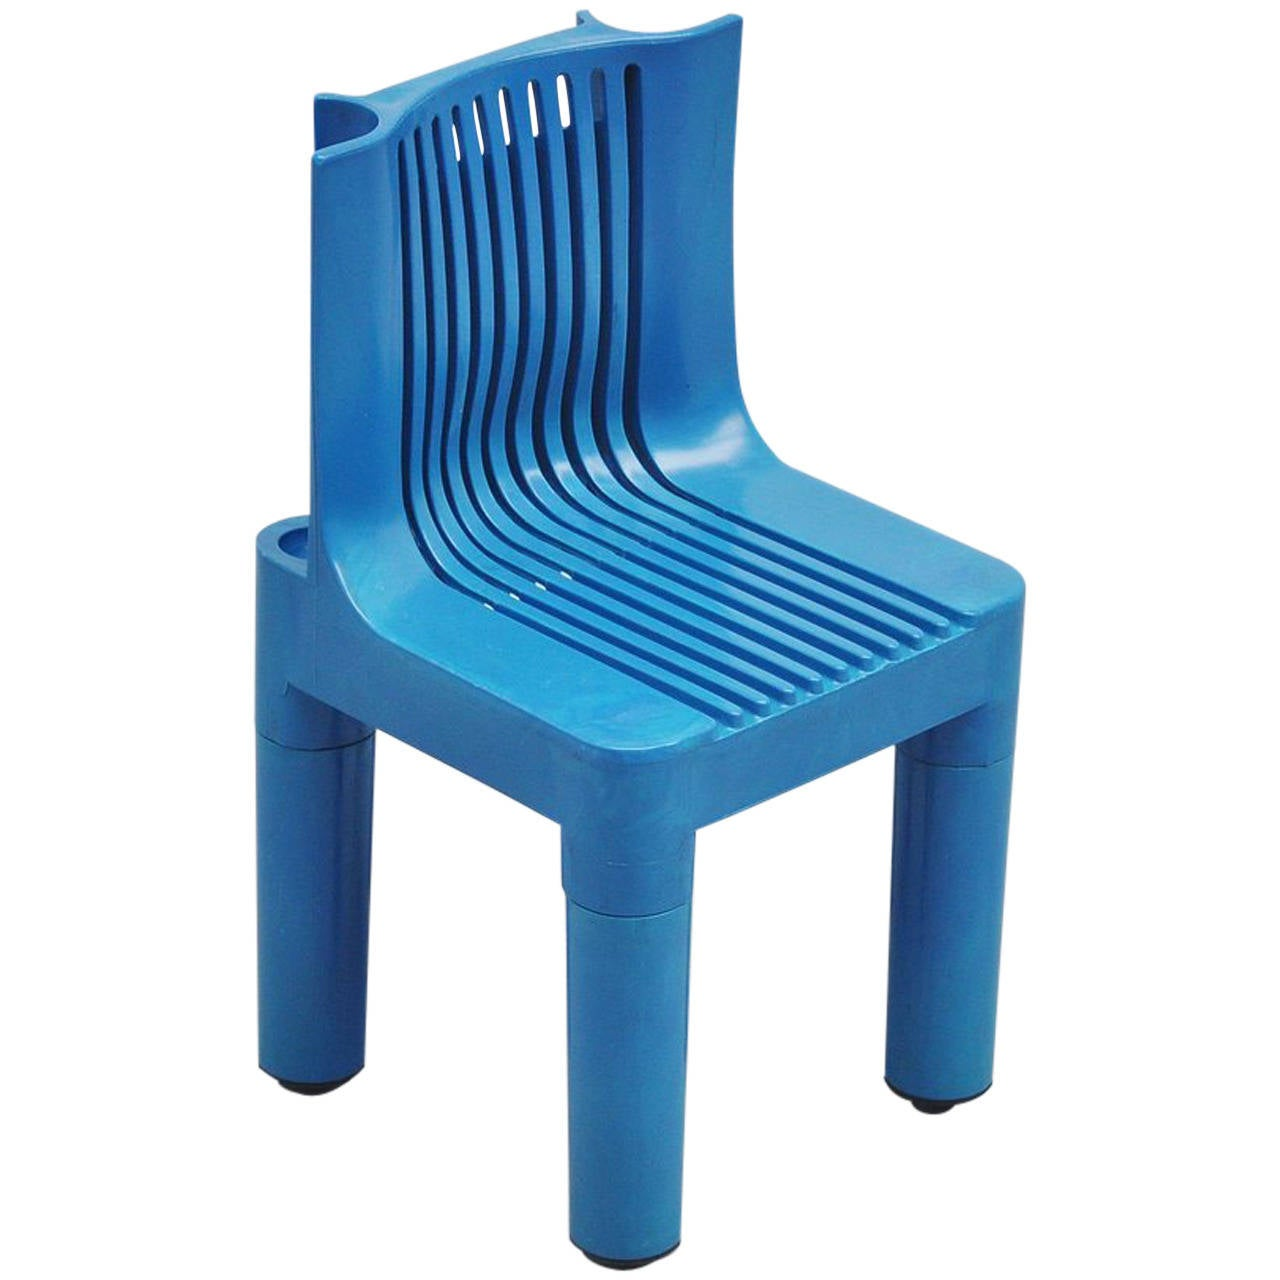 Children's Gaming Chairs Marco Zanuso Blue Child 39s Chair For Kartell 1964 At 1stdibs